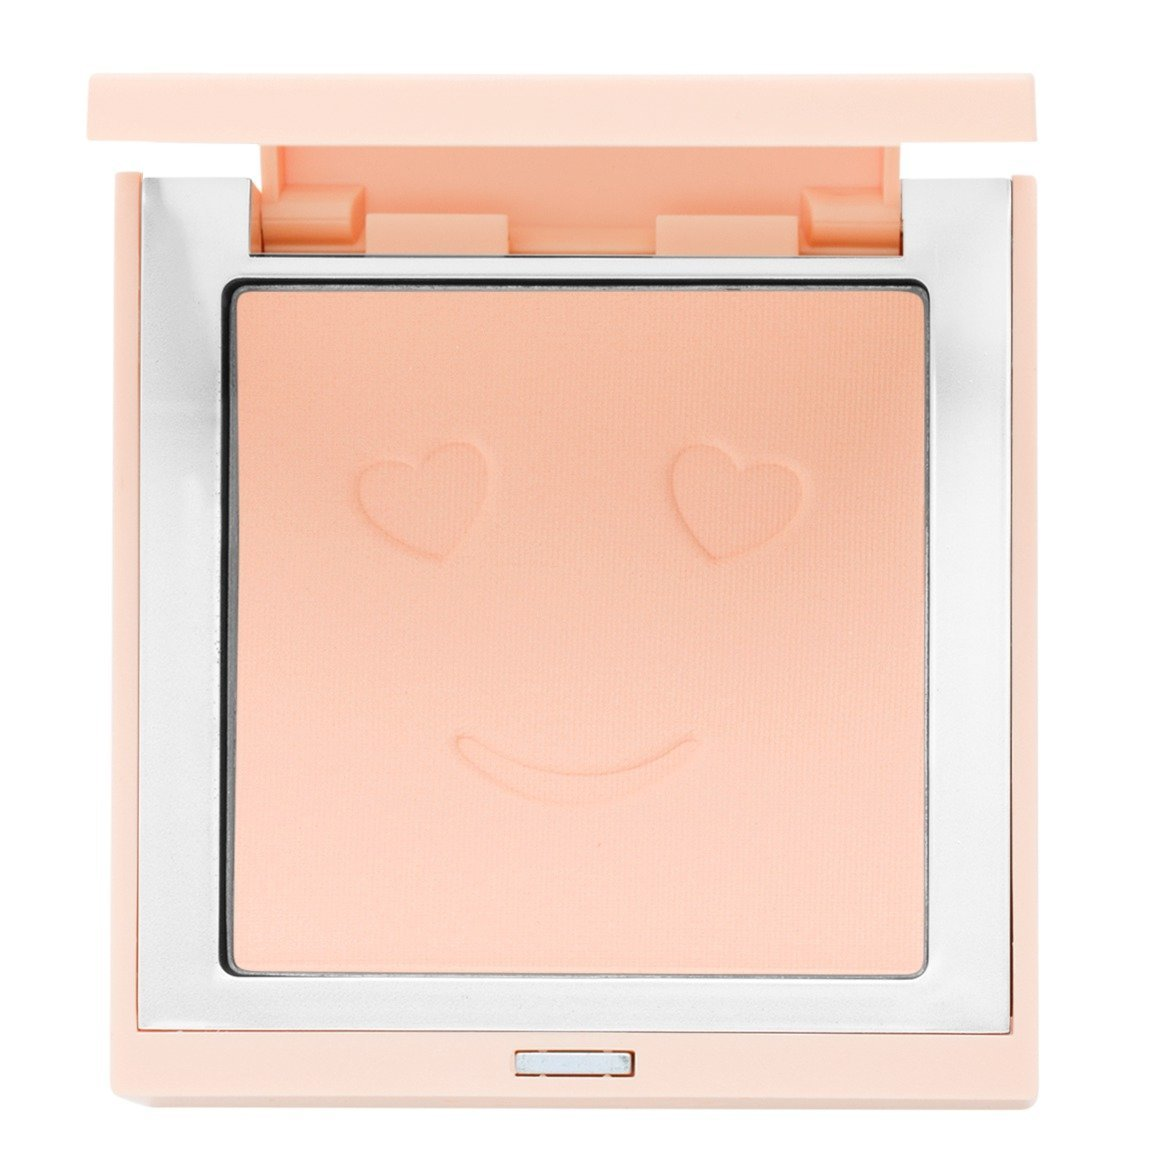 Benefit Cosmetics Hello Happy Velvet Powder Foundation 01 Fair - Cool product smear.